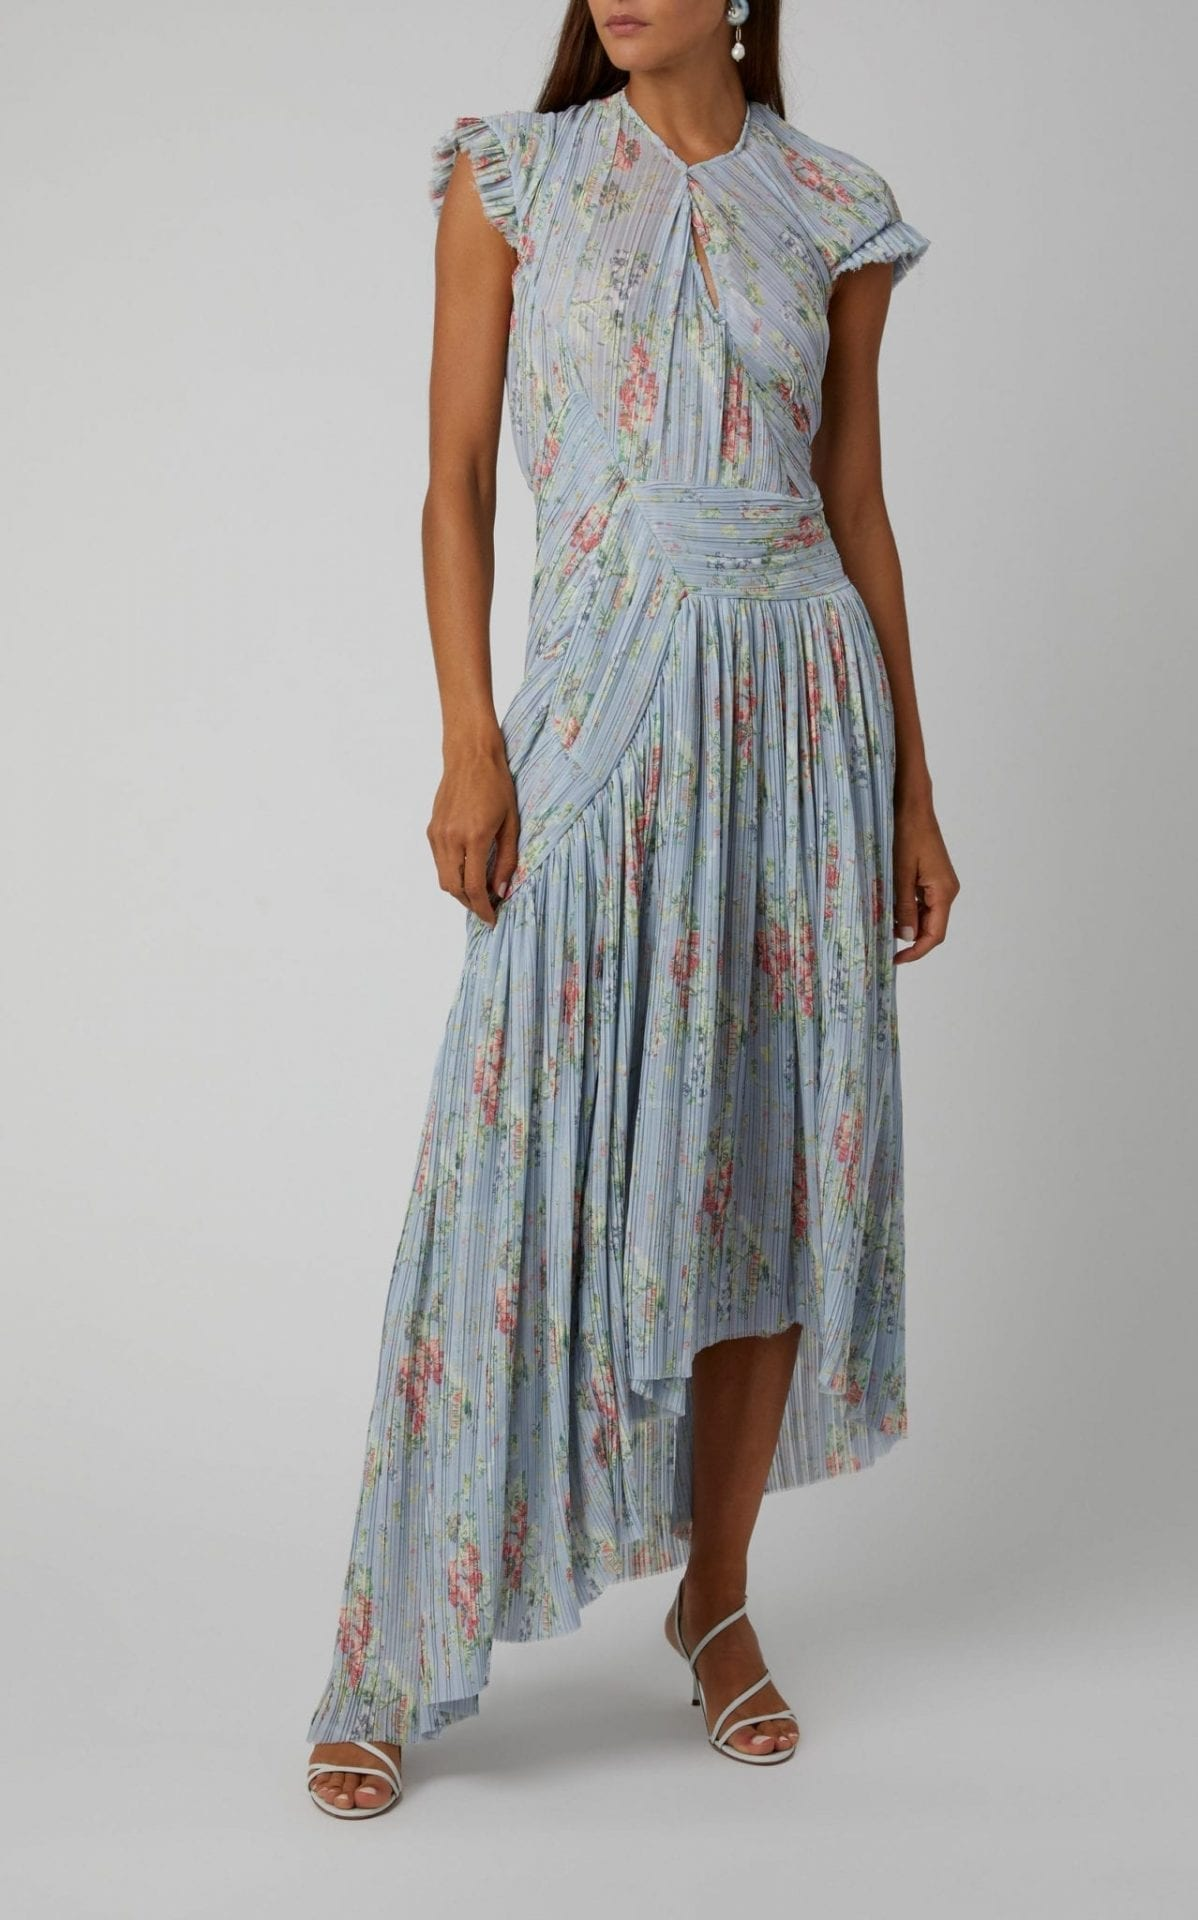 PREEN BY THORNTON BREGAZZI Julia Floral-Print Plissé Midi-Dress